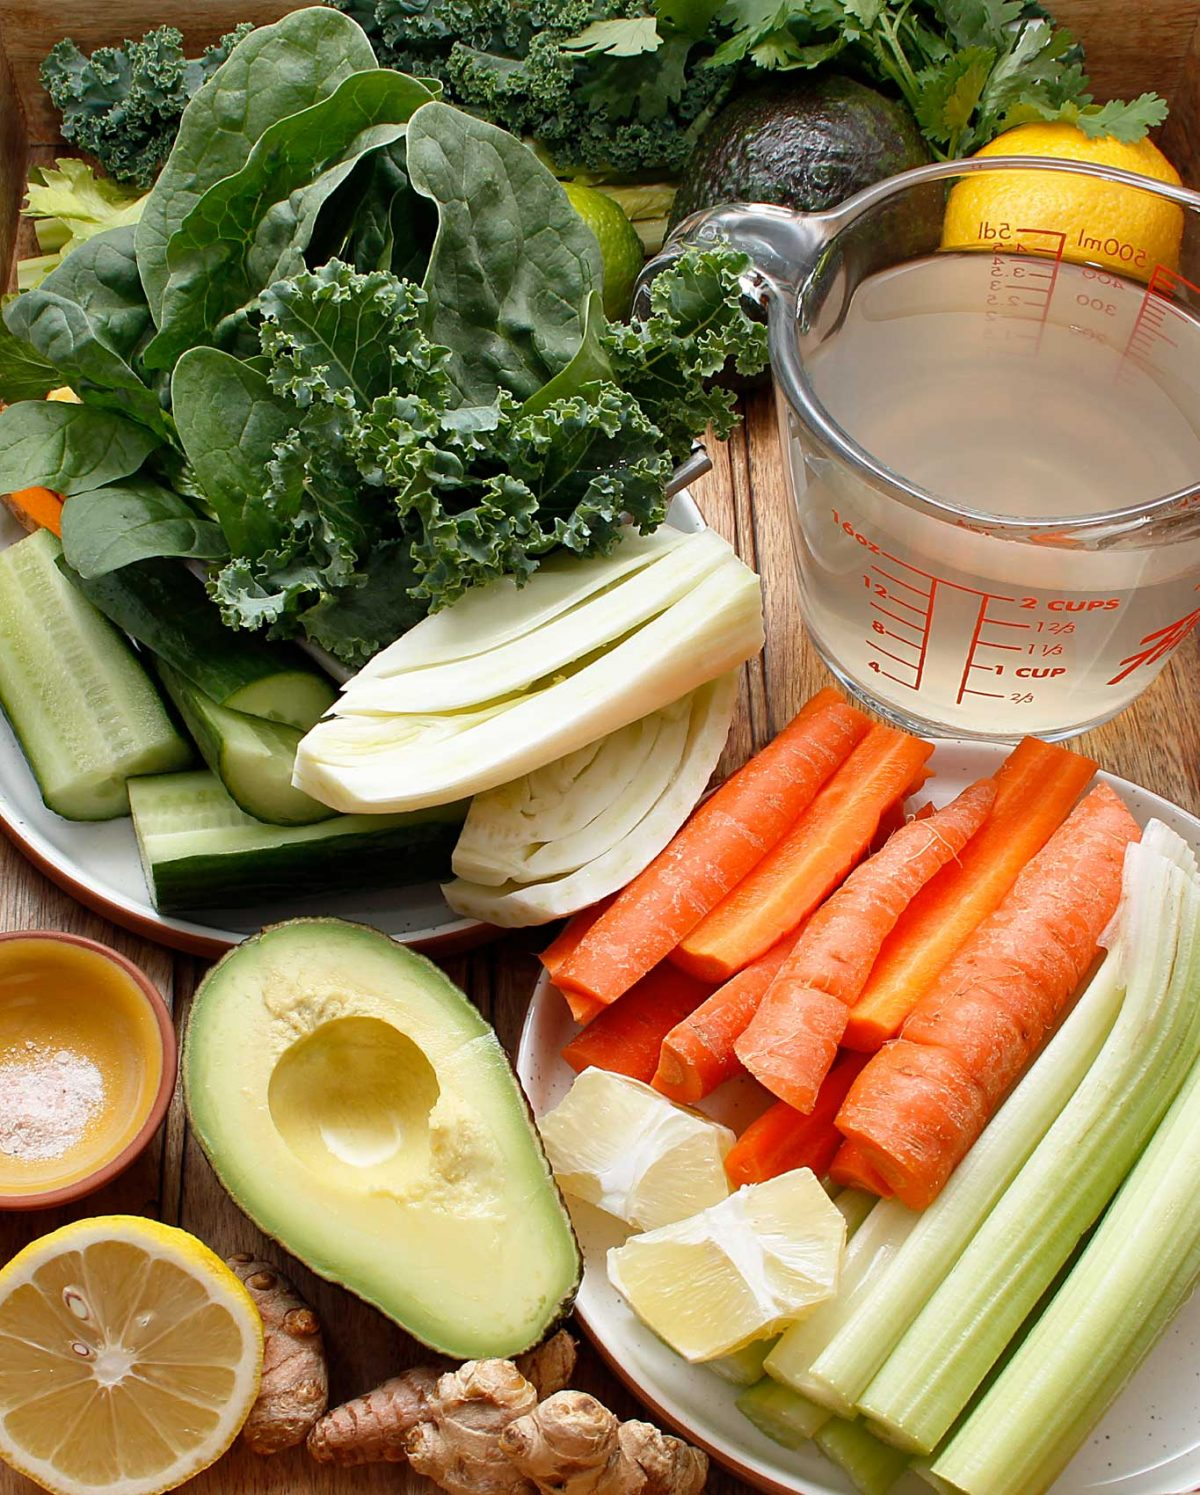 Fresh vegetables to help you make the best Healthy & Delicious Green Juice